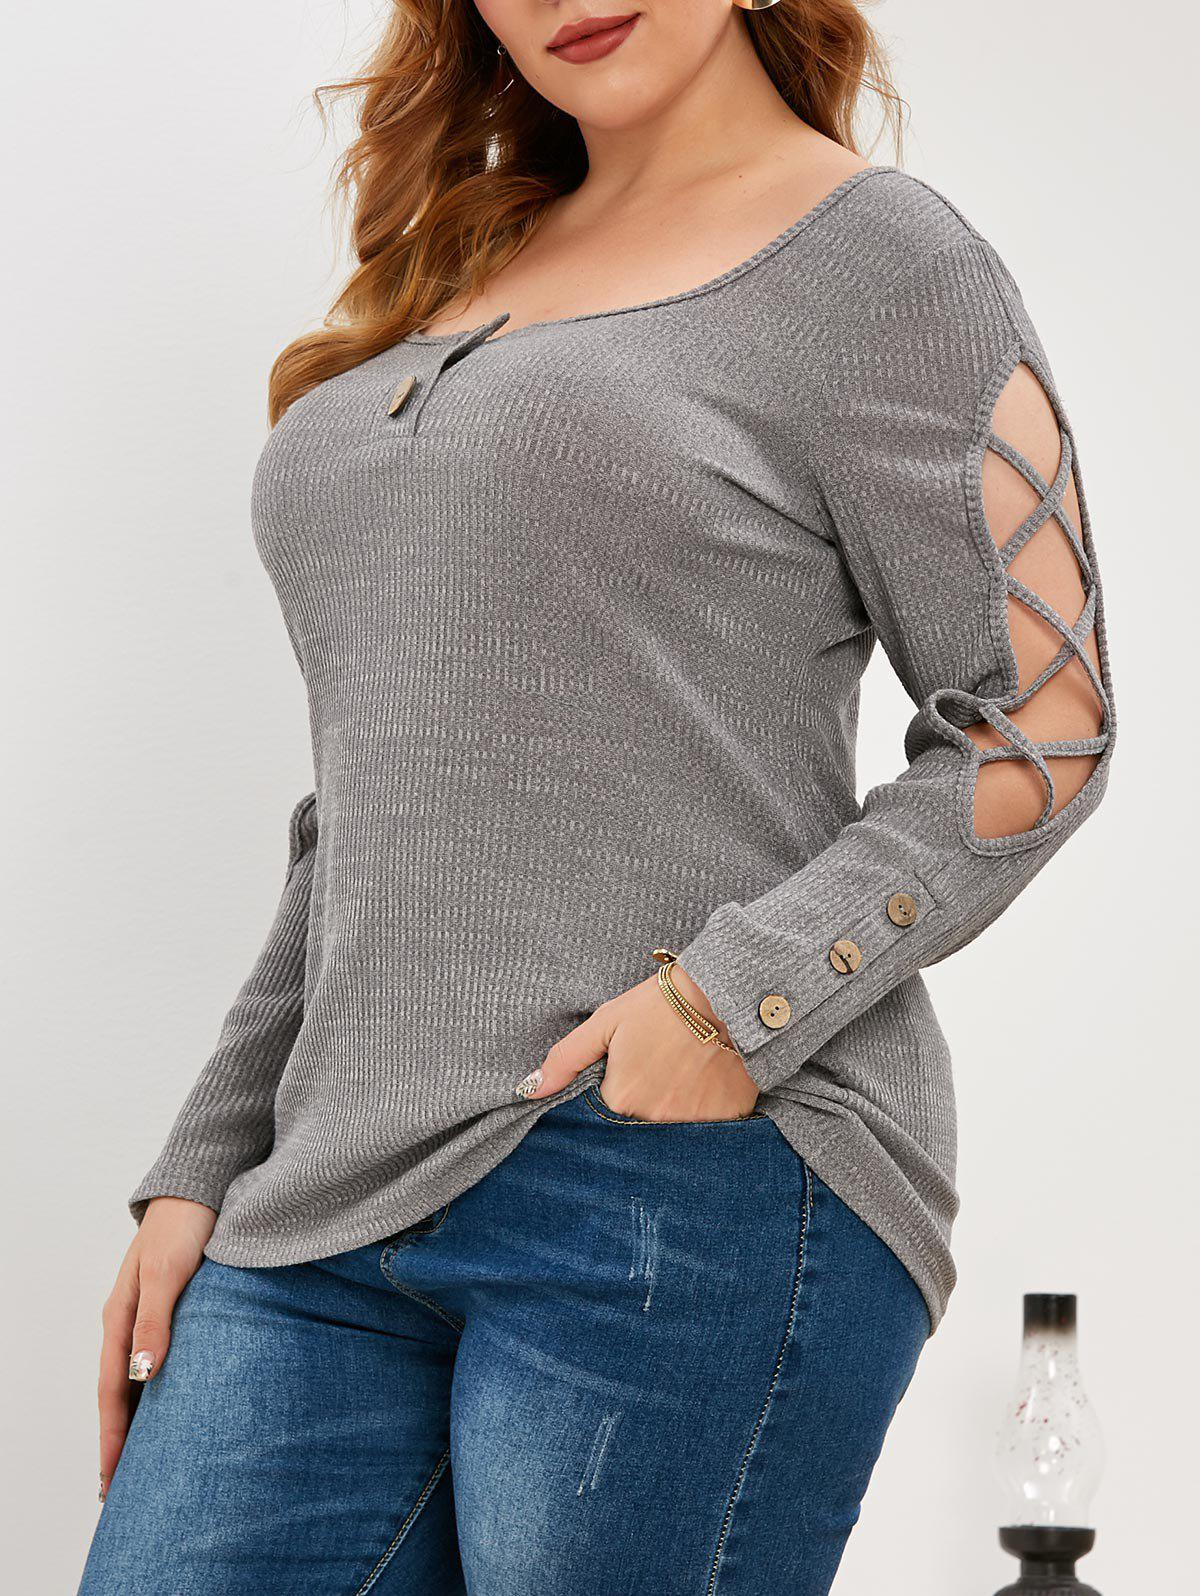 Plus Size Knitted Criss Cross Henley Top - DARK GRAY 2X